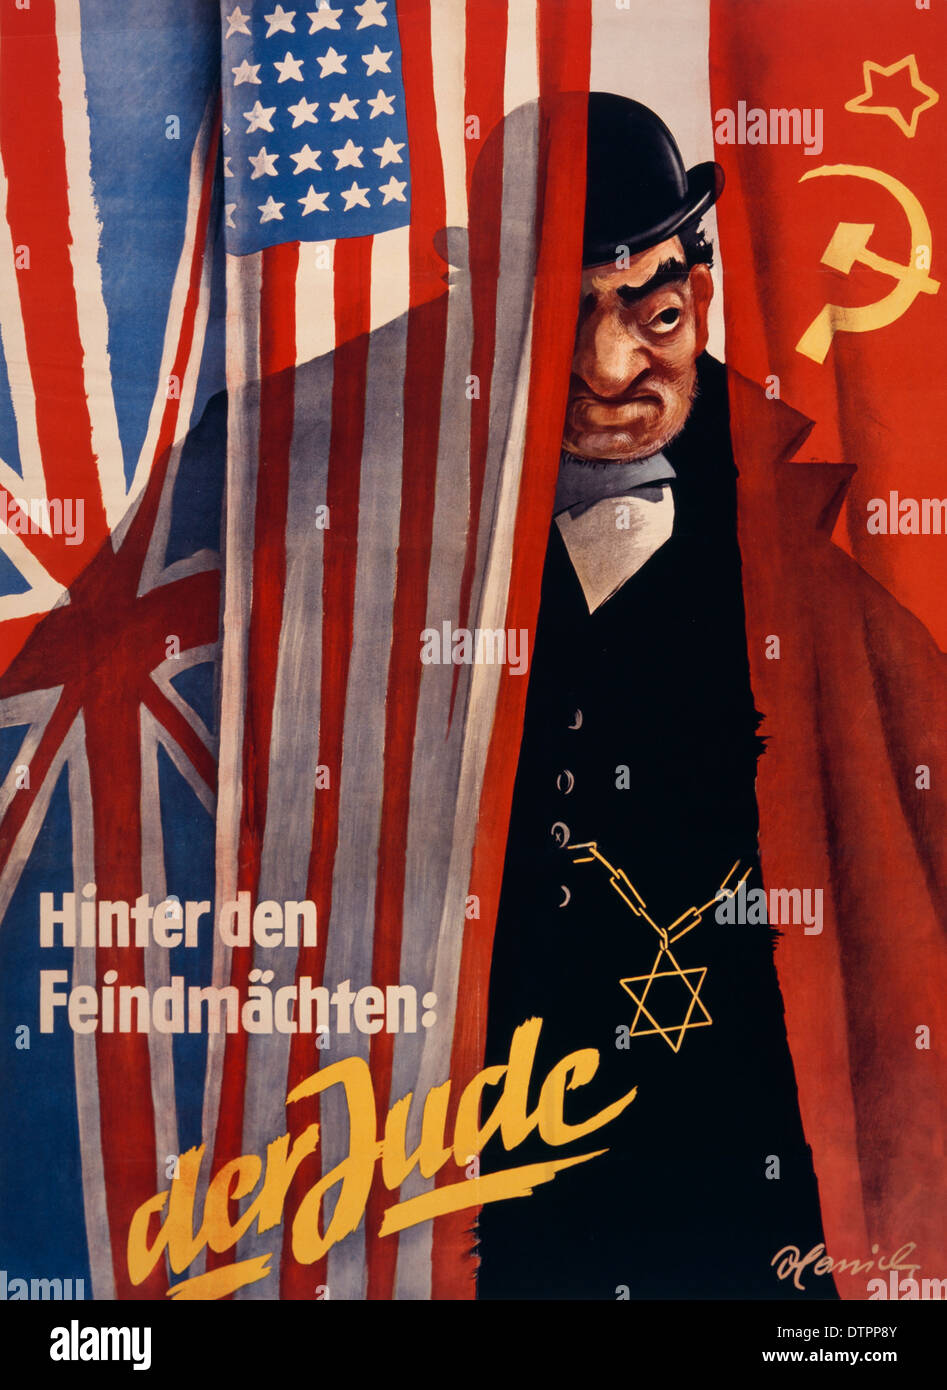 Anti Semitic propaganda poster from the German Nazi regime era in which the Jew is shown as a rich, fat and ugly looking man. - Stock Image